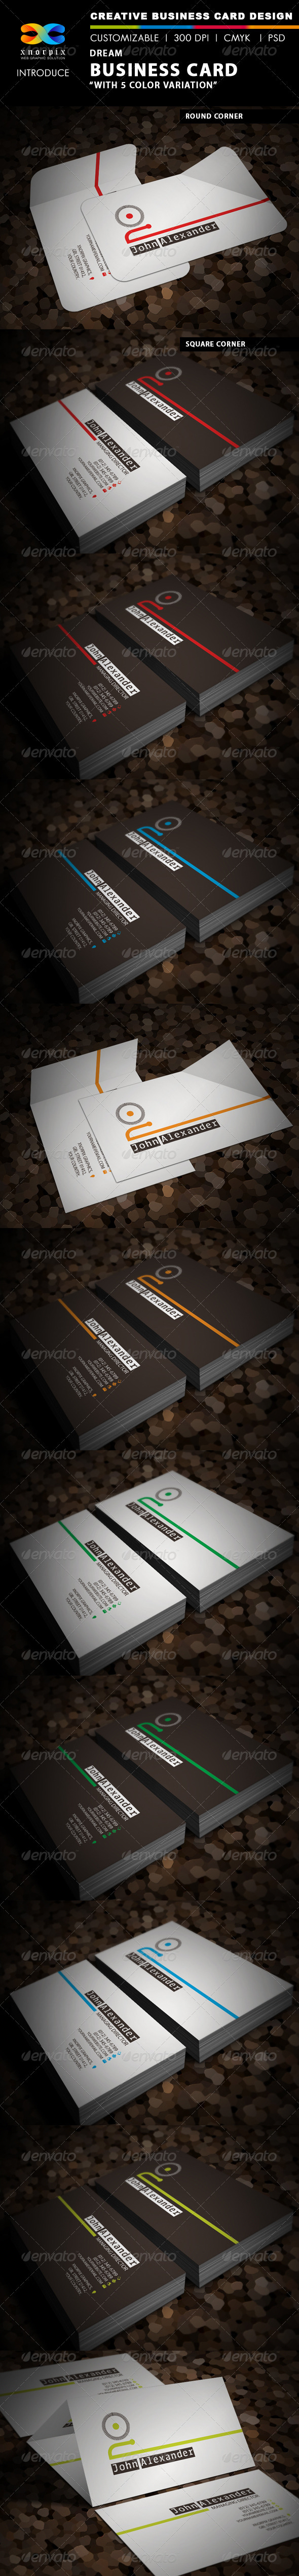 GraphicRiver Dream Business Card 3601172